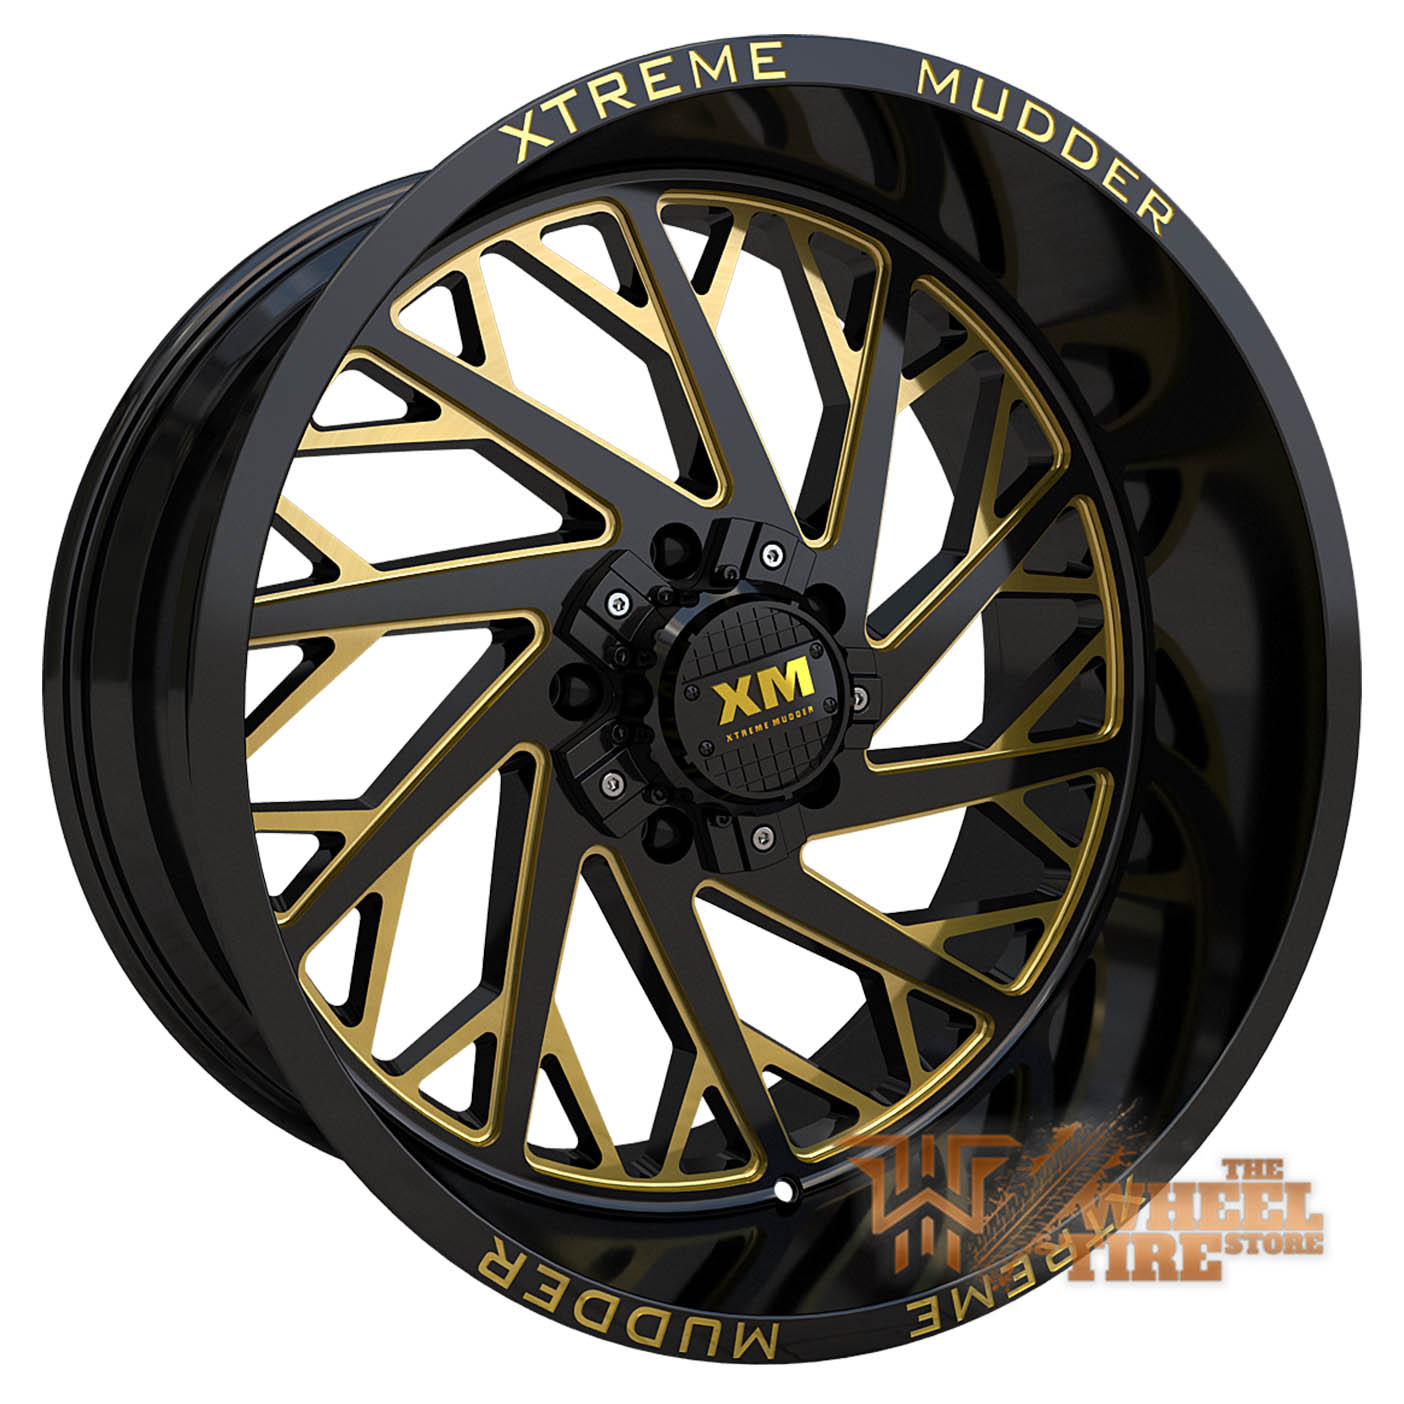 XTREME MUDDER XM-400 Wheel in Gloss Black Yellow Milled (Set of 4)